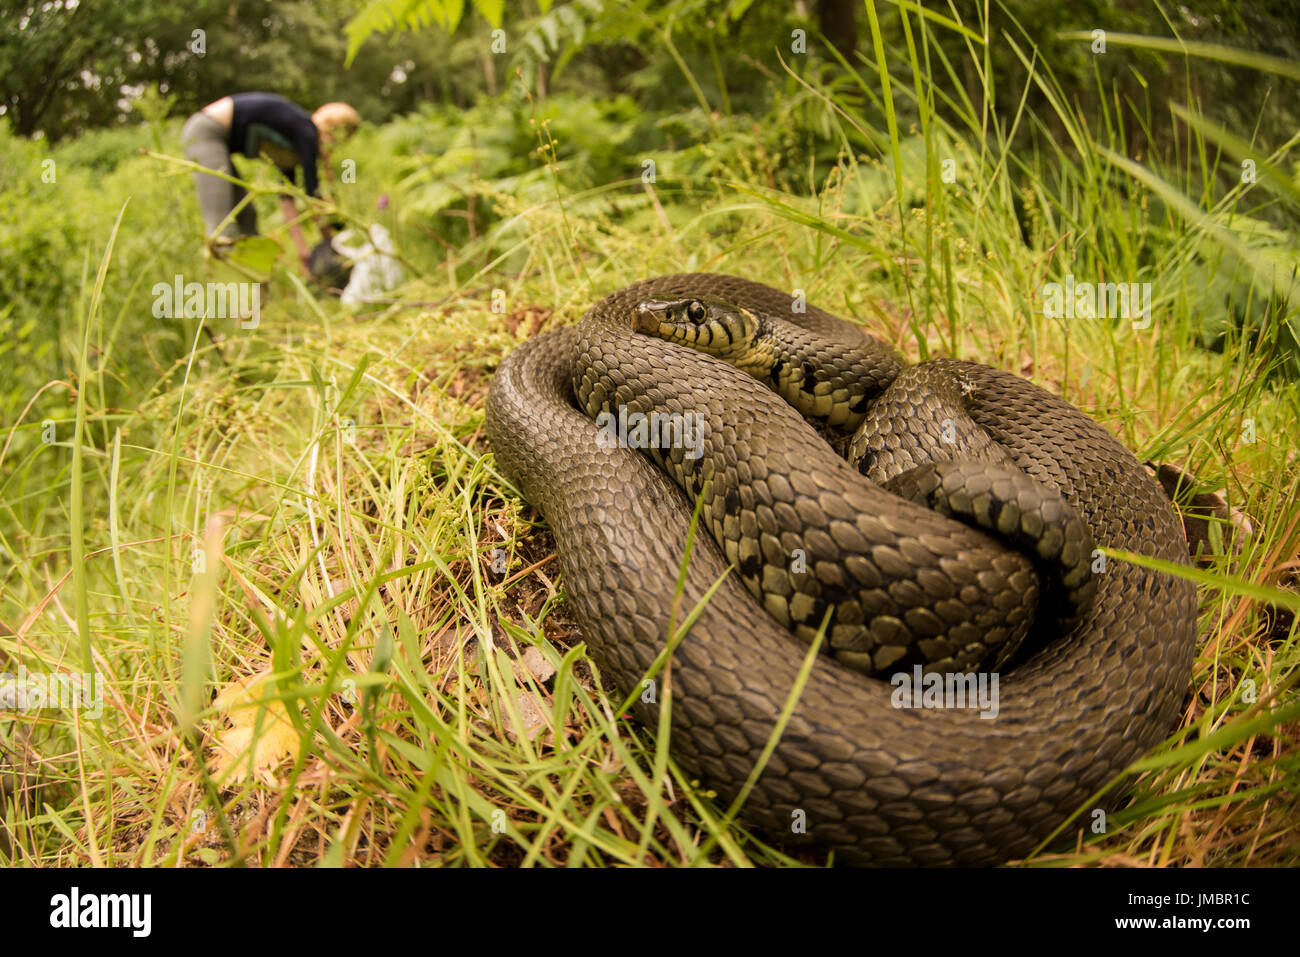 A grass snake remains hidden in the grass as a person goes about their business in the background. - Stock Image